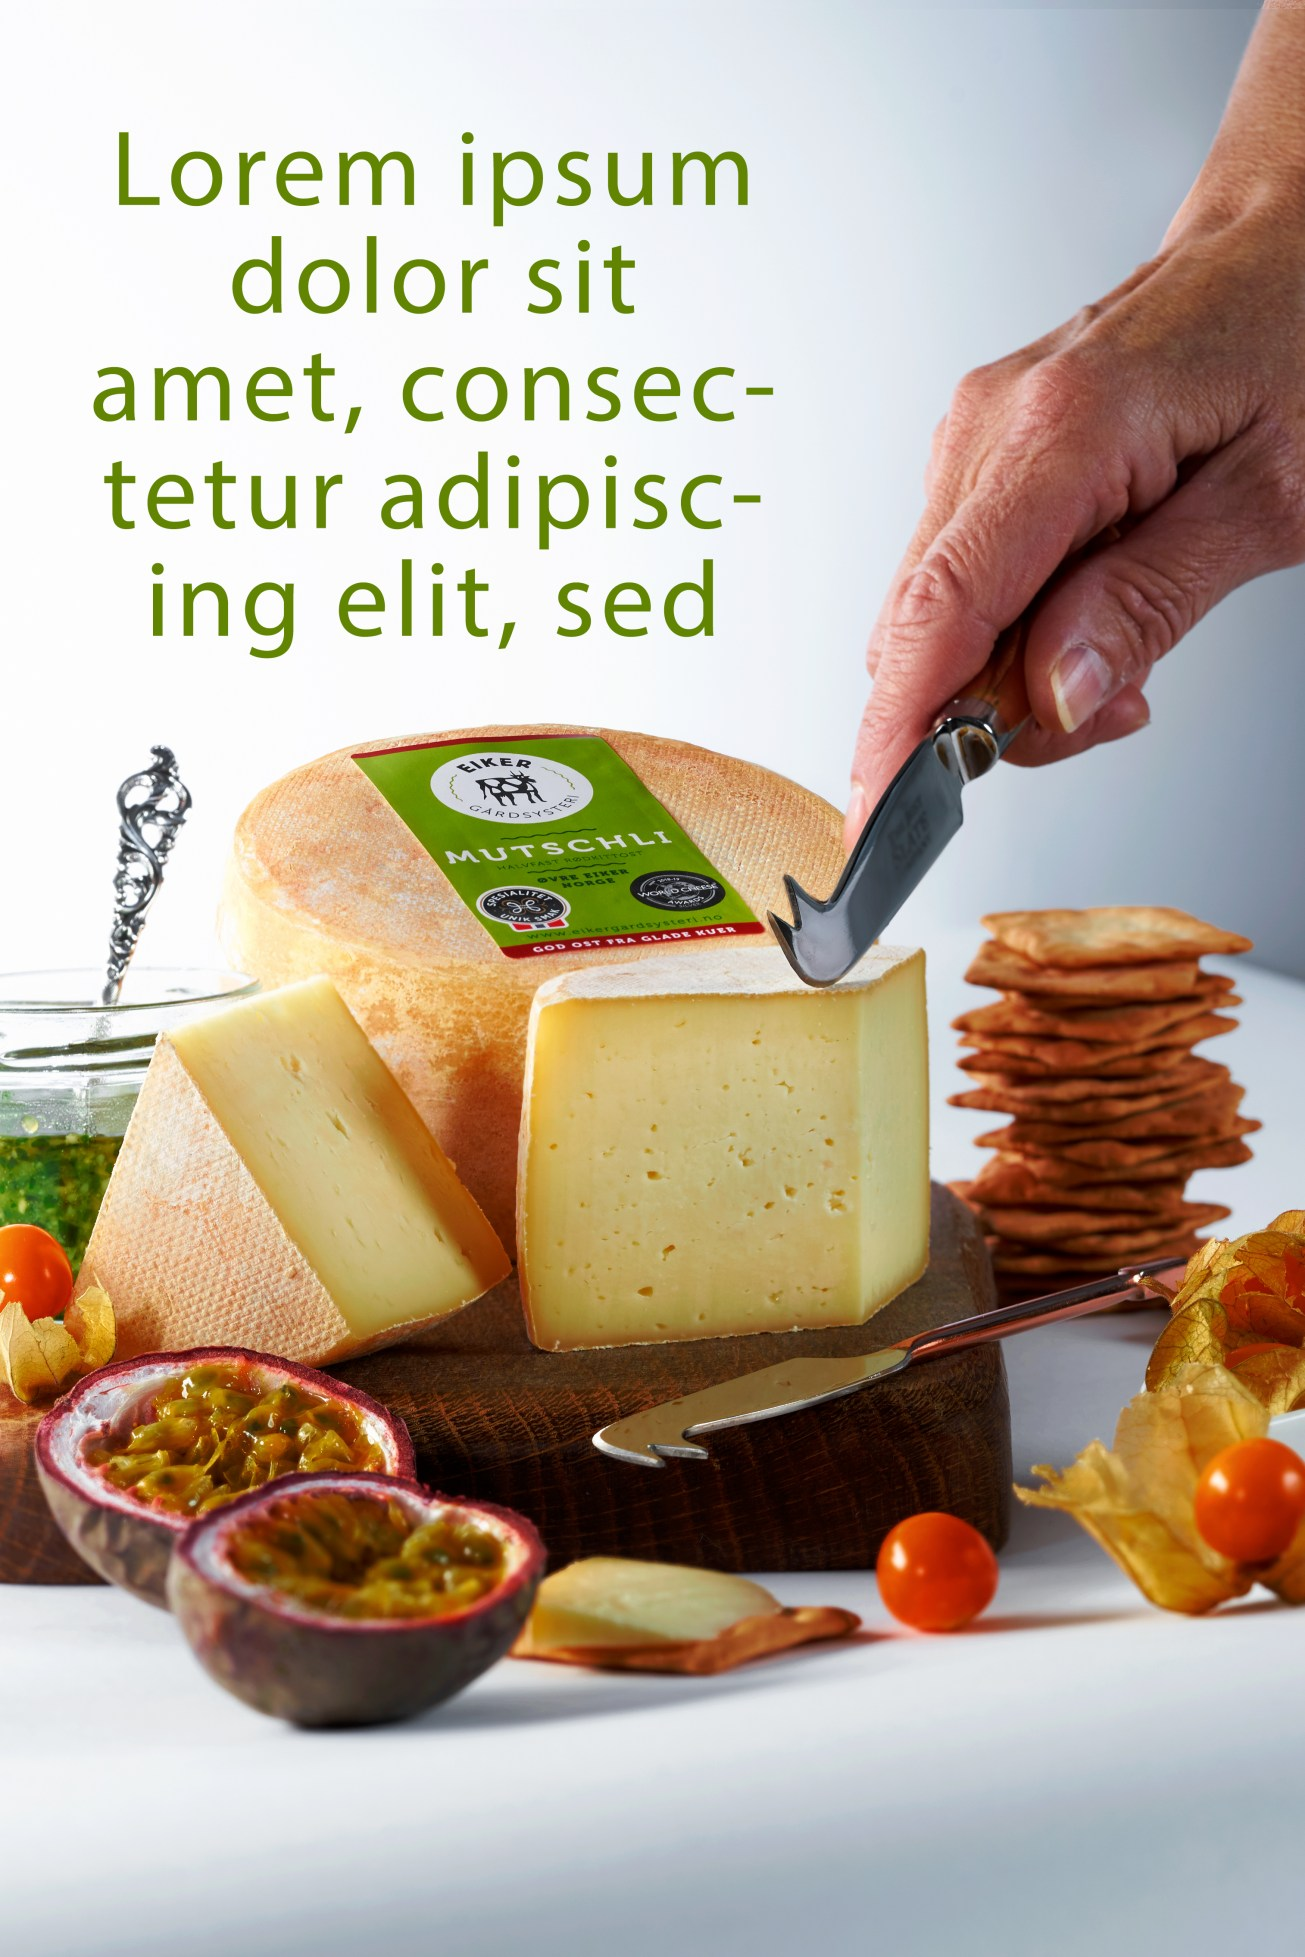 Lifestyle cheese shot for local cheese producer with example text